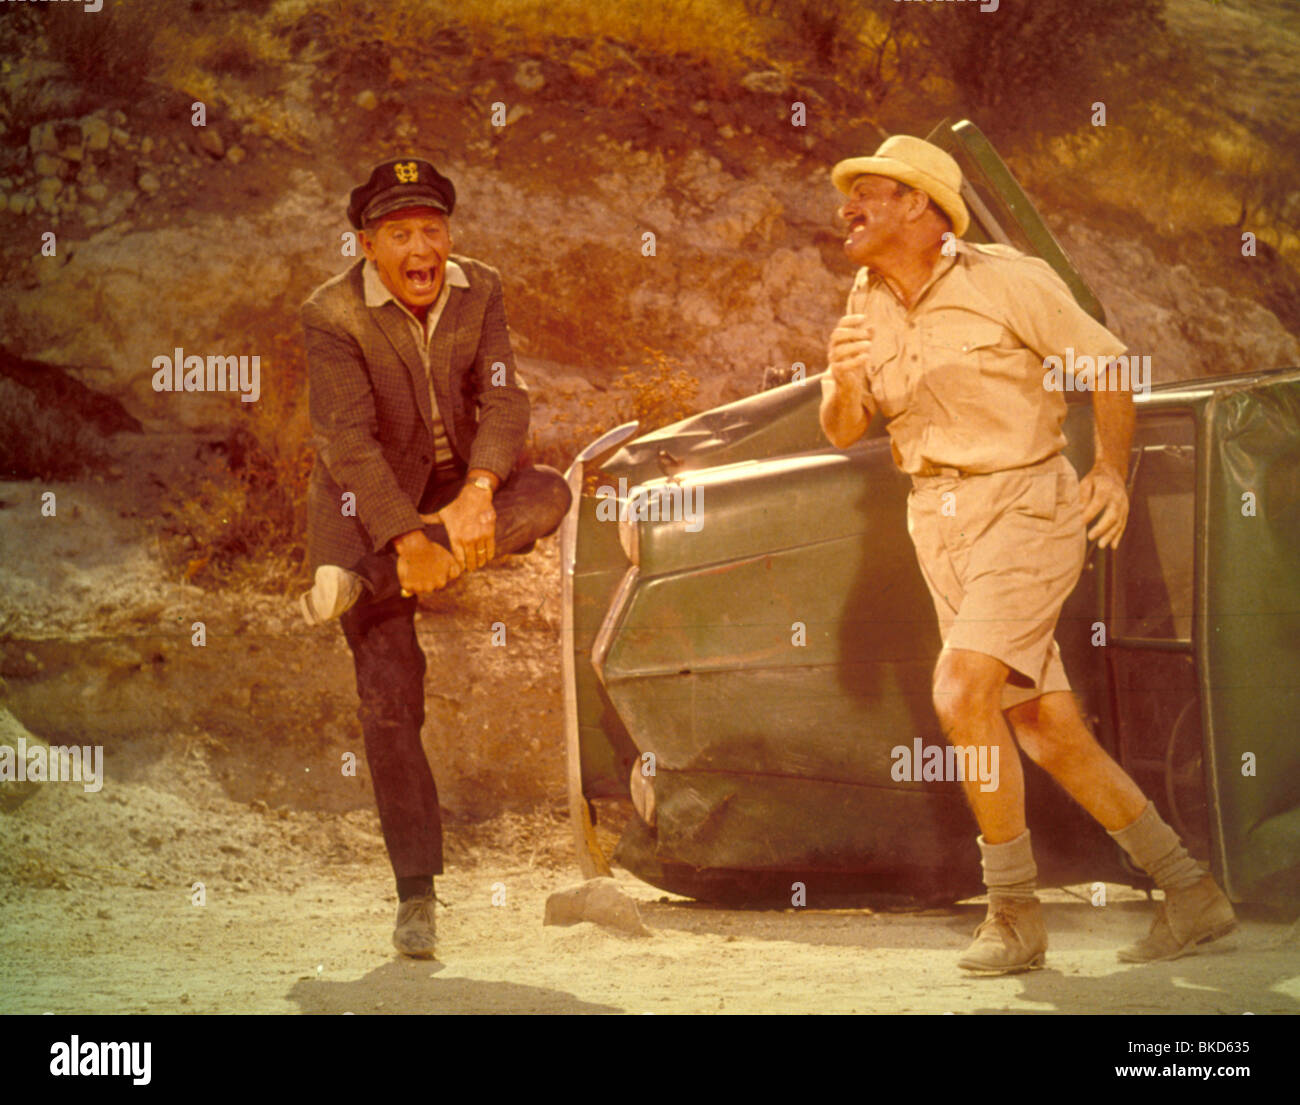 IT'S A MAD MAD MAD MAD WORLD (1963) MILTON BERLE, TERRY-THOMAS IMMW 023 - Stock Image